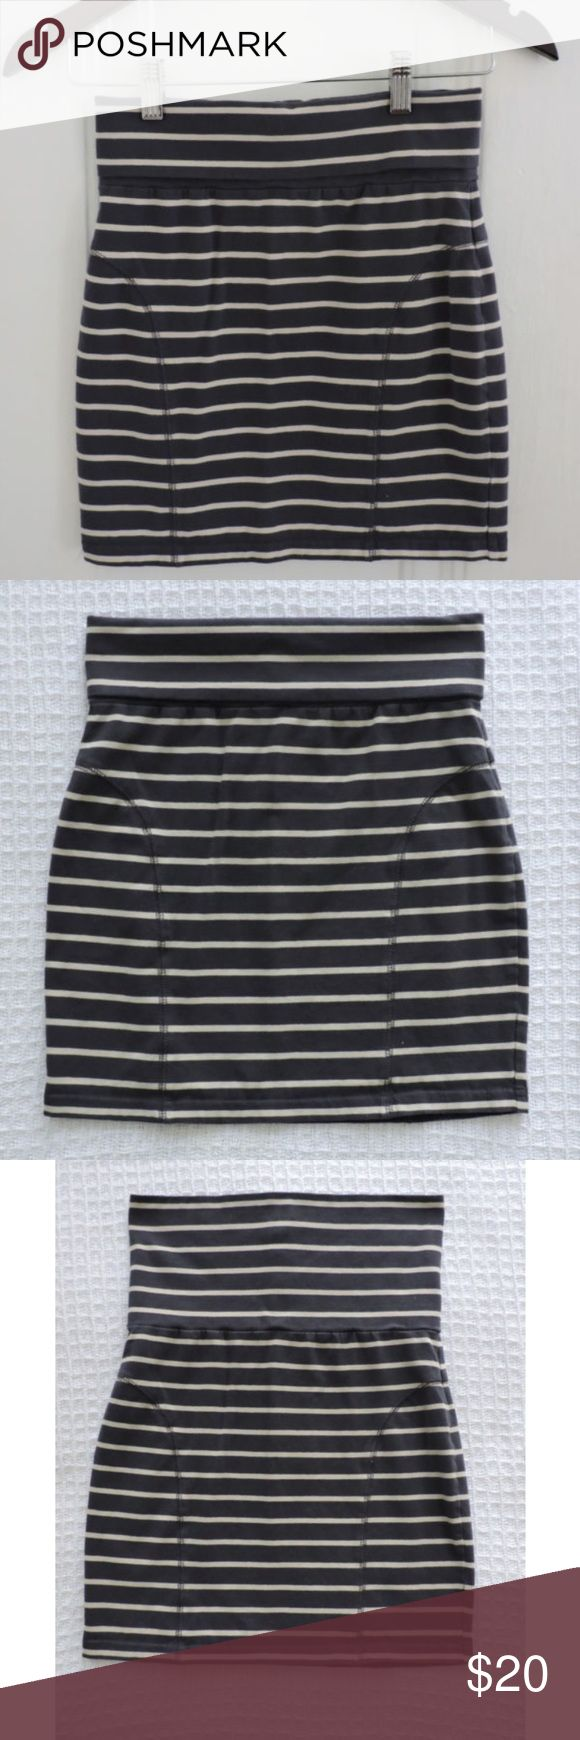 Nordstrom Frenchi gray ivory striped stretch skirt Stretch elastic mini bodycon skirt, top can roll down, gray with ivory stripes, from Nordstrom brand is Frenchi, size L, worn a few times, in good condition Frenchi Skirts Mini